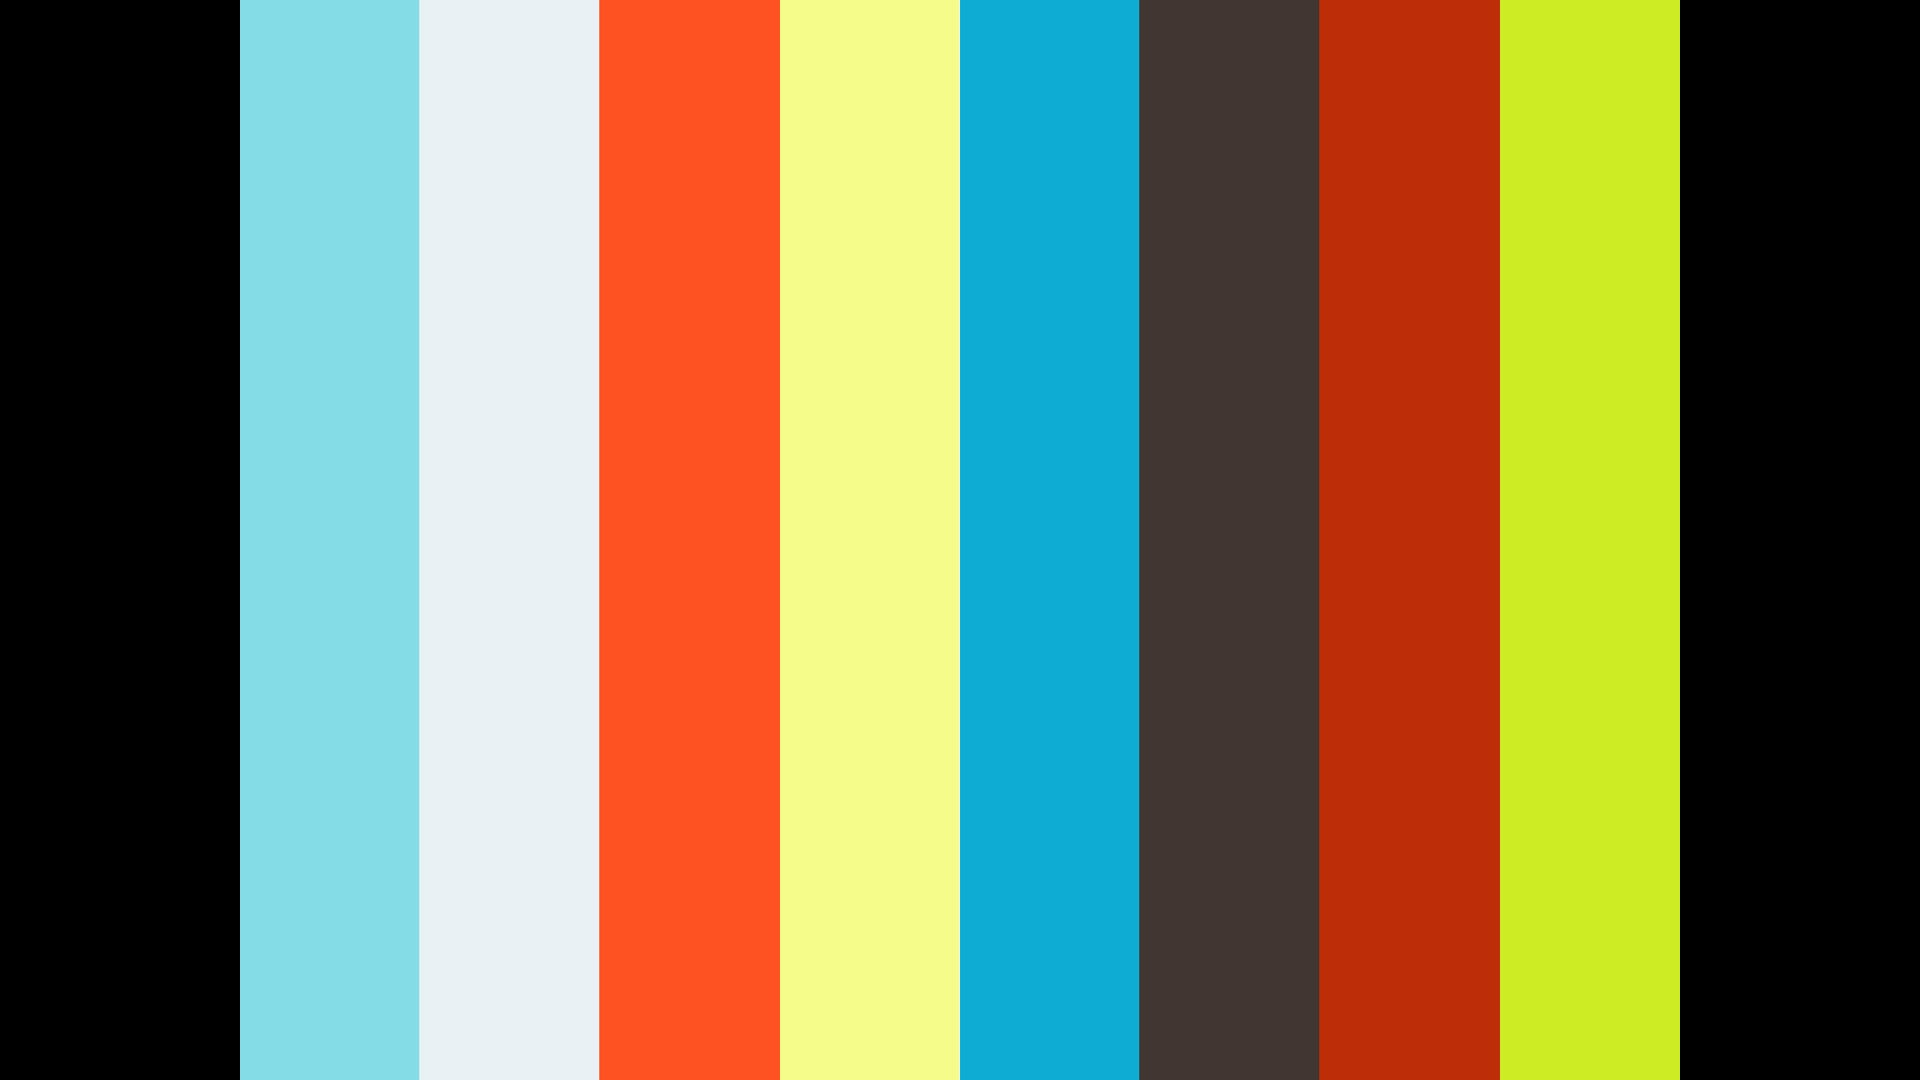 Zach Trinca using the Zacuto Trigger Grips for Nucleus M